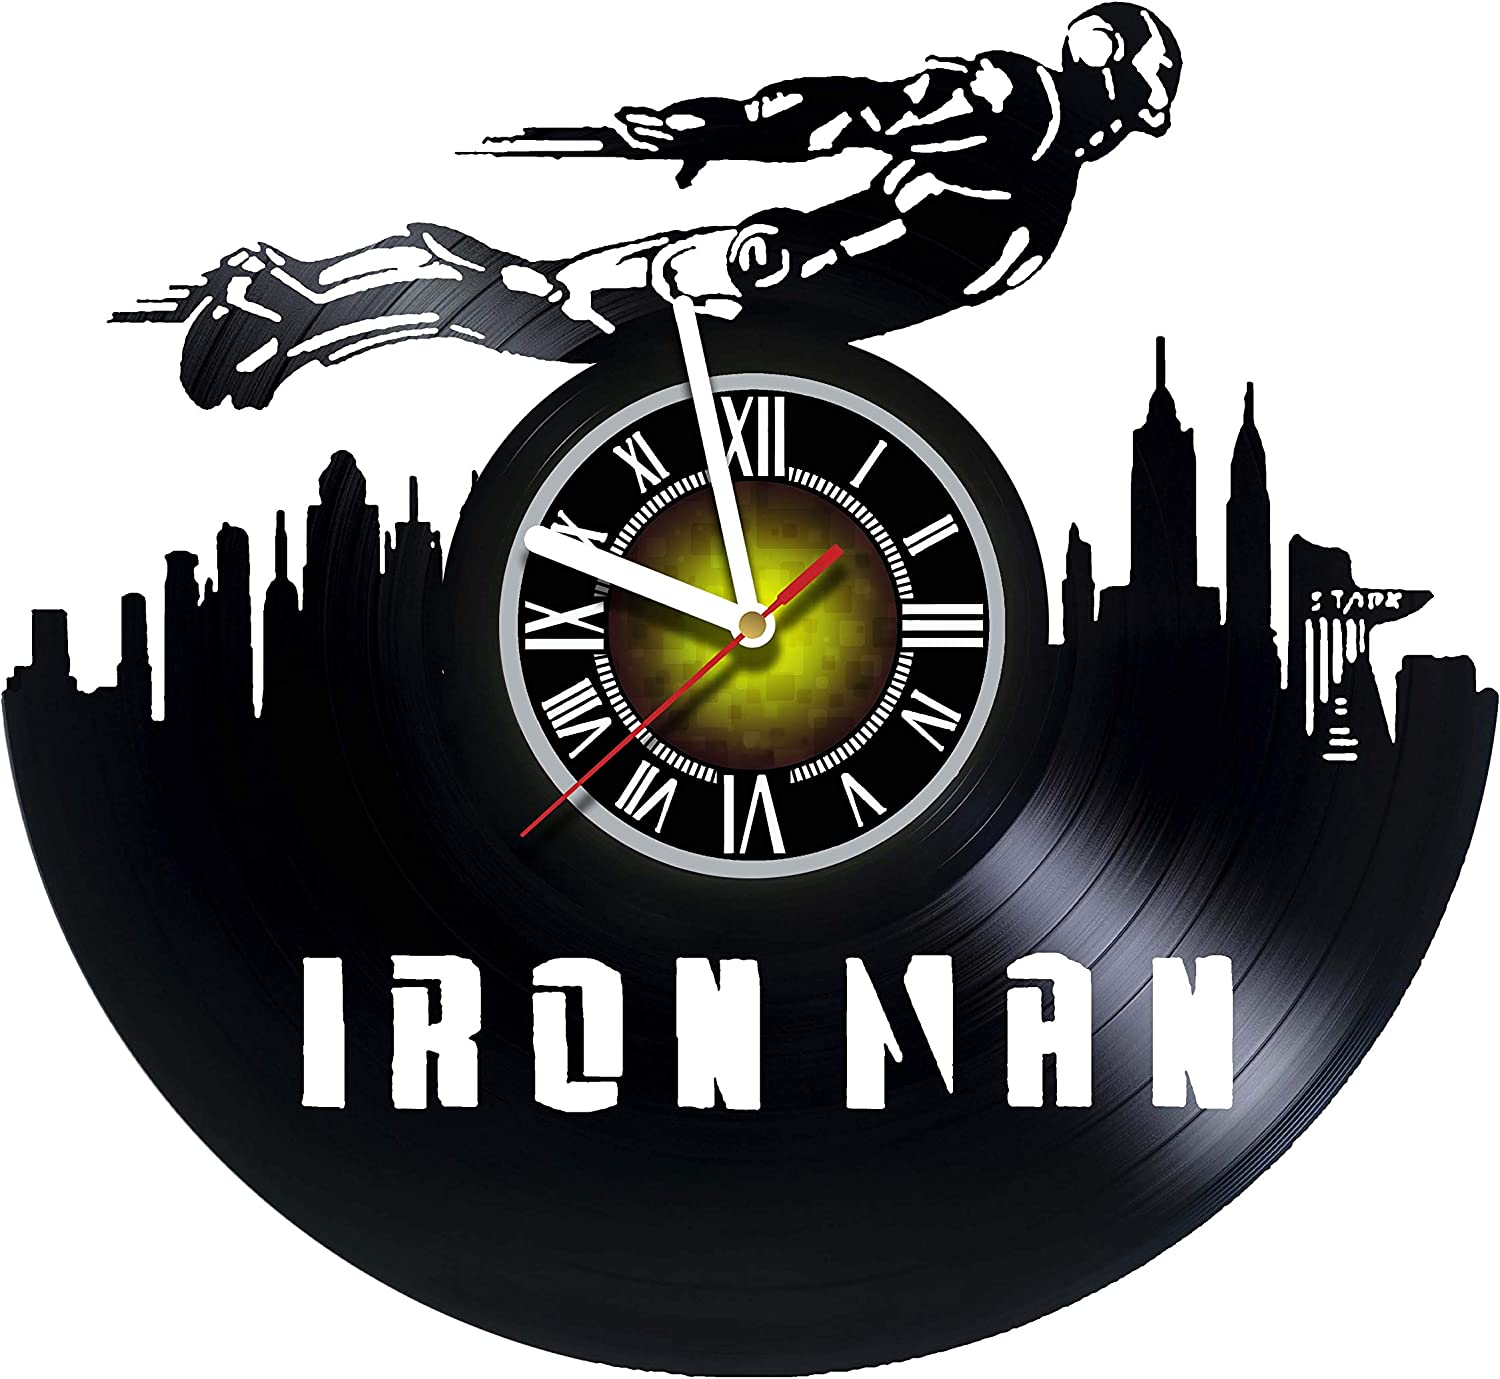 Amazon Com Toffy Workshop Iron Man City Vinyl Wall Clock Get Unique Gifts Presents For Birthday Christmas Ideas For Boys Girls Men Women Adults Him And Her Sport Unique